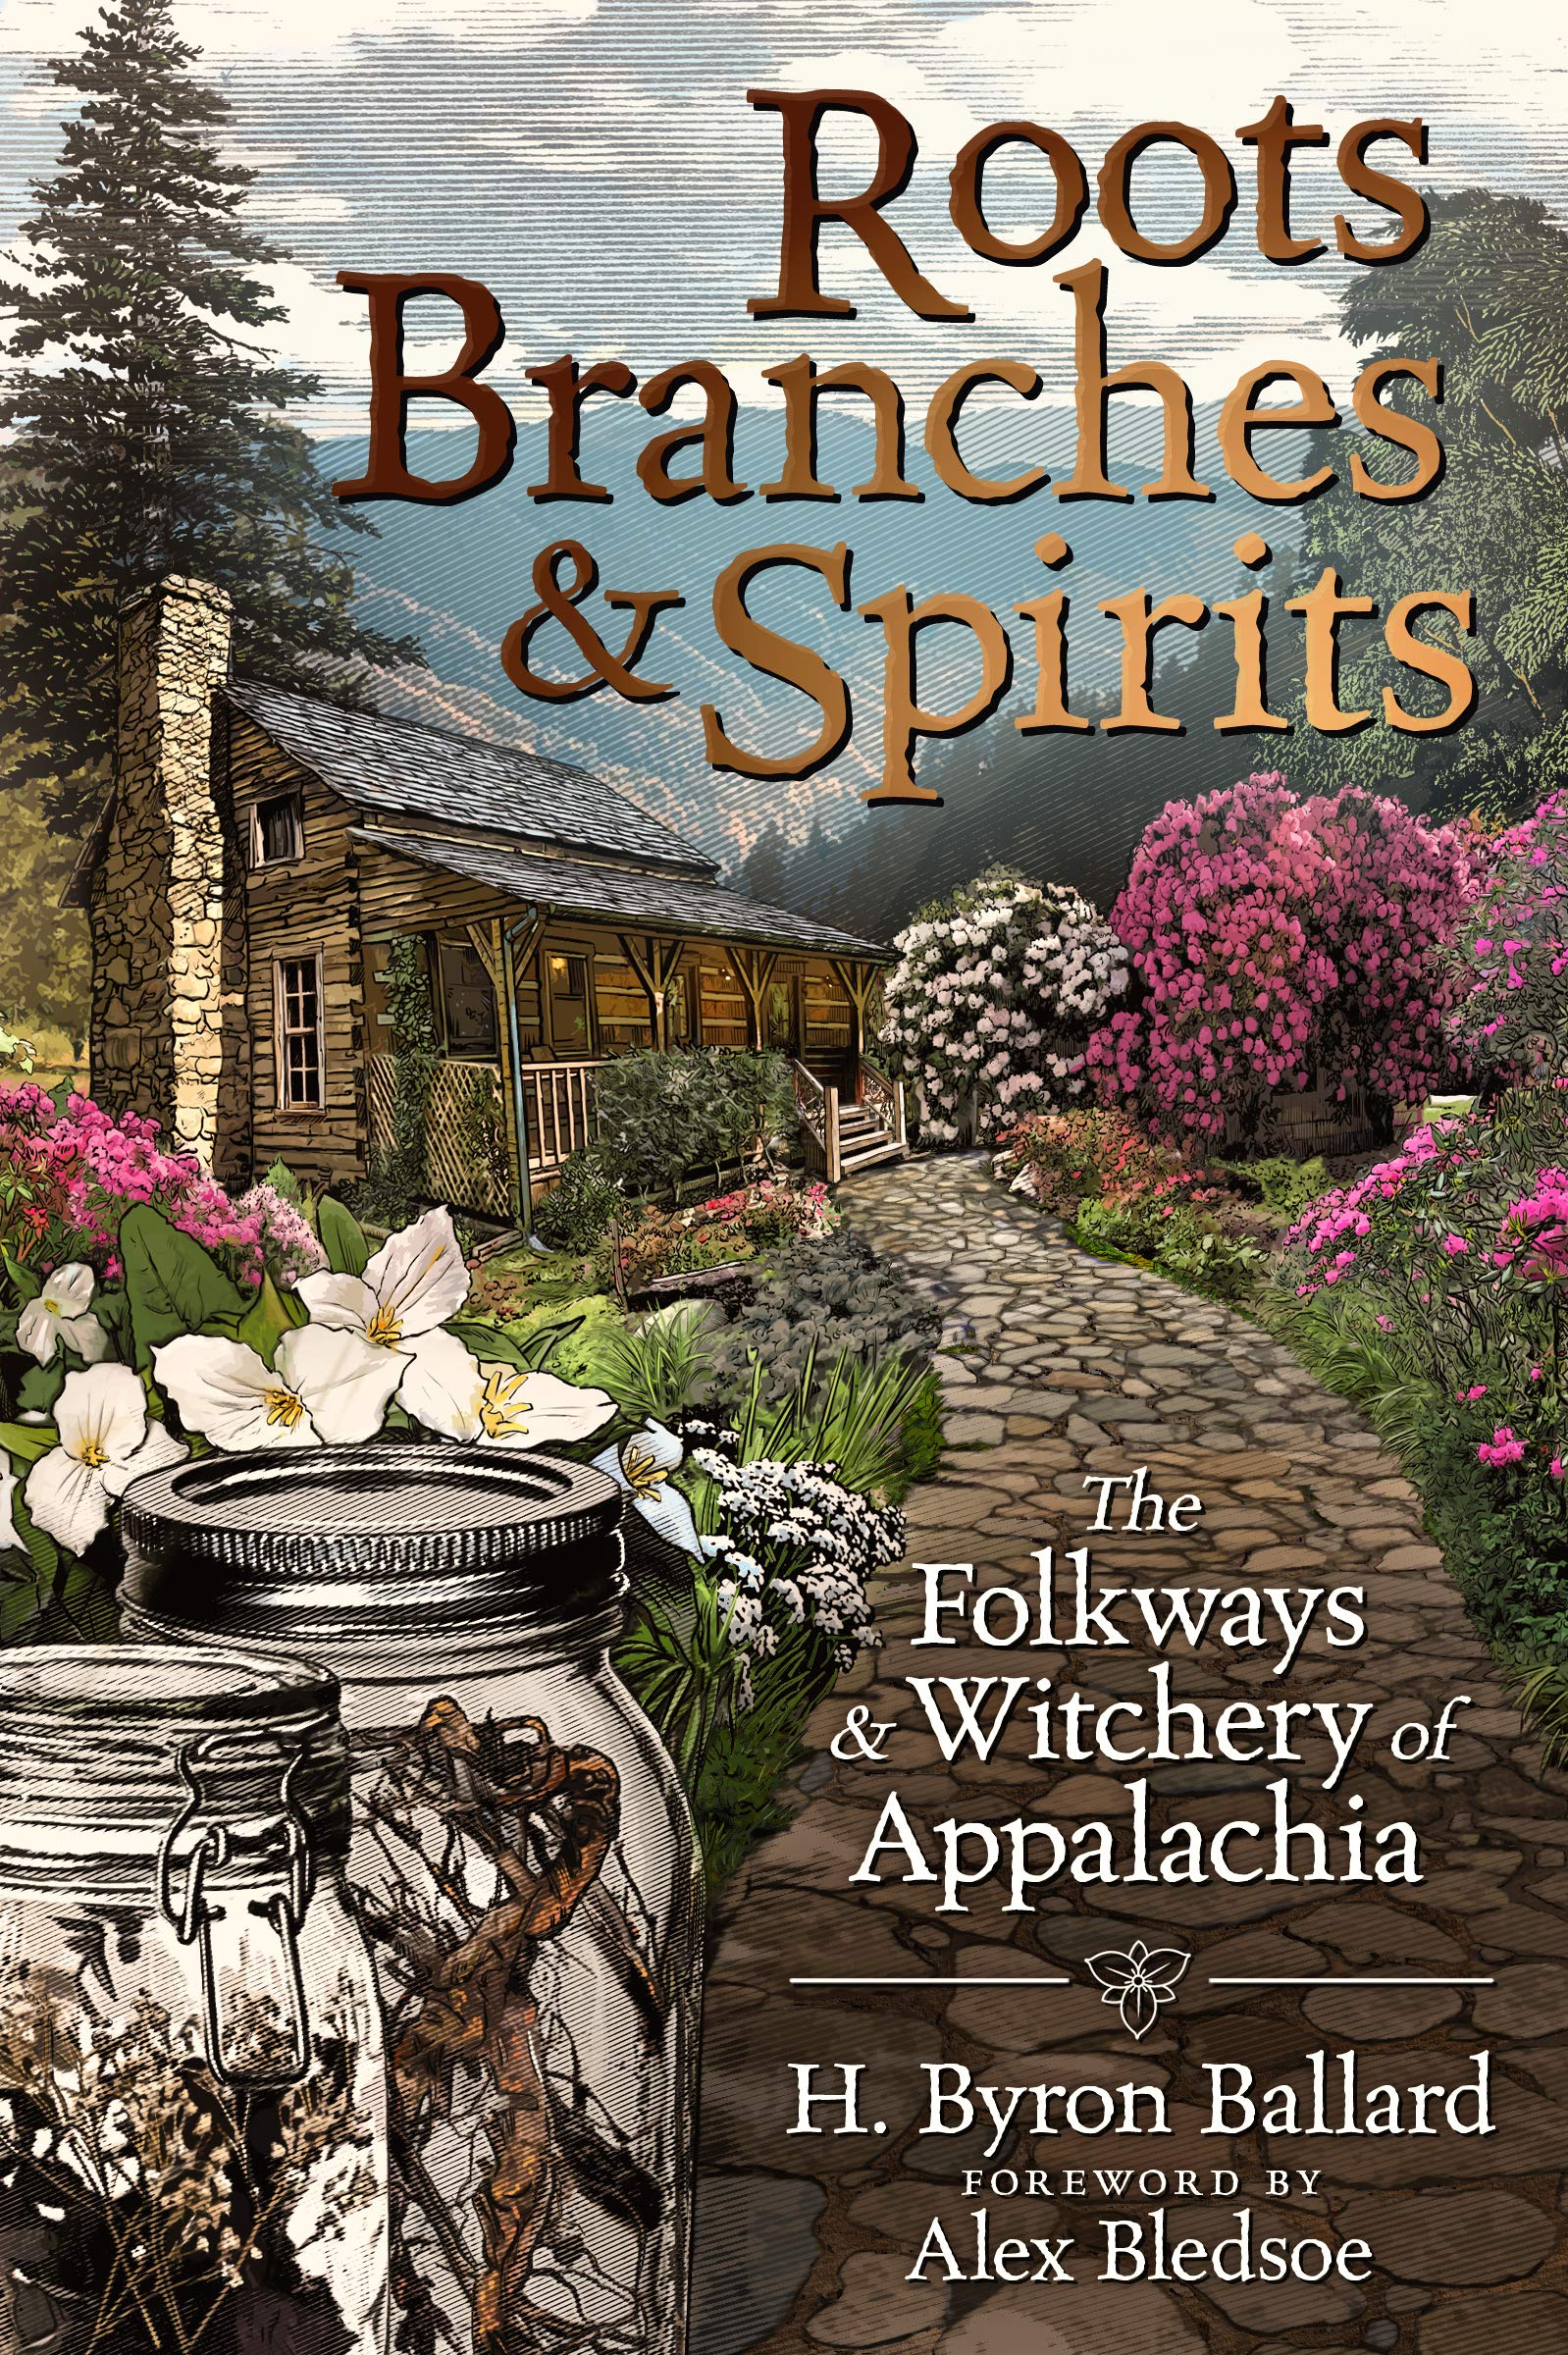 Roots, Branches & Spirits: The Folkways & Witchery of Appalachia by H. Byron Ballard